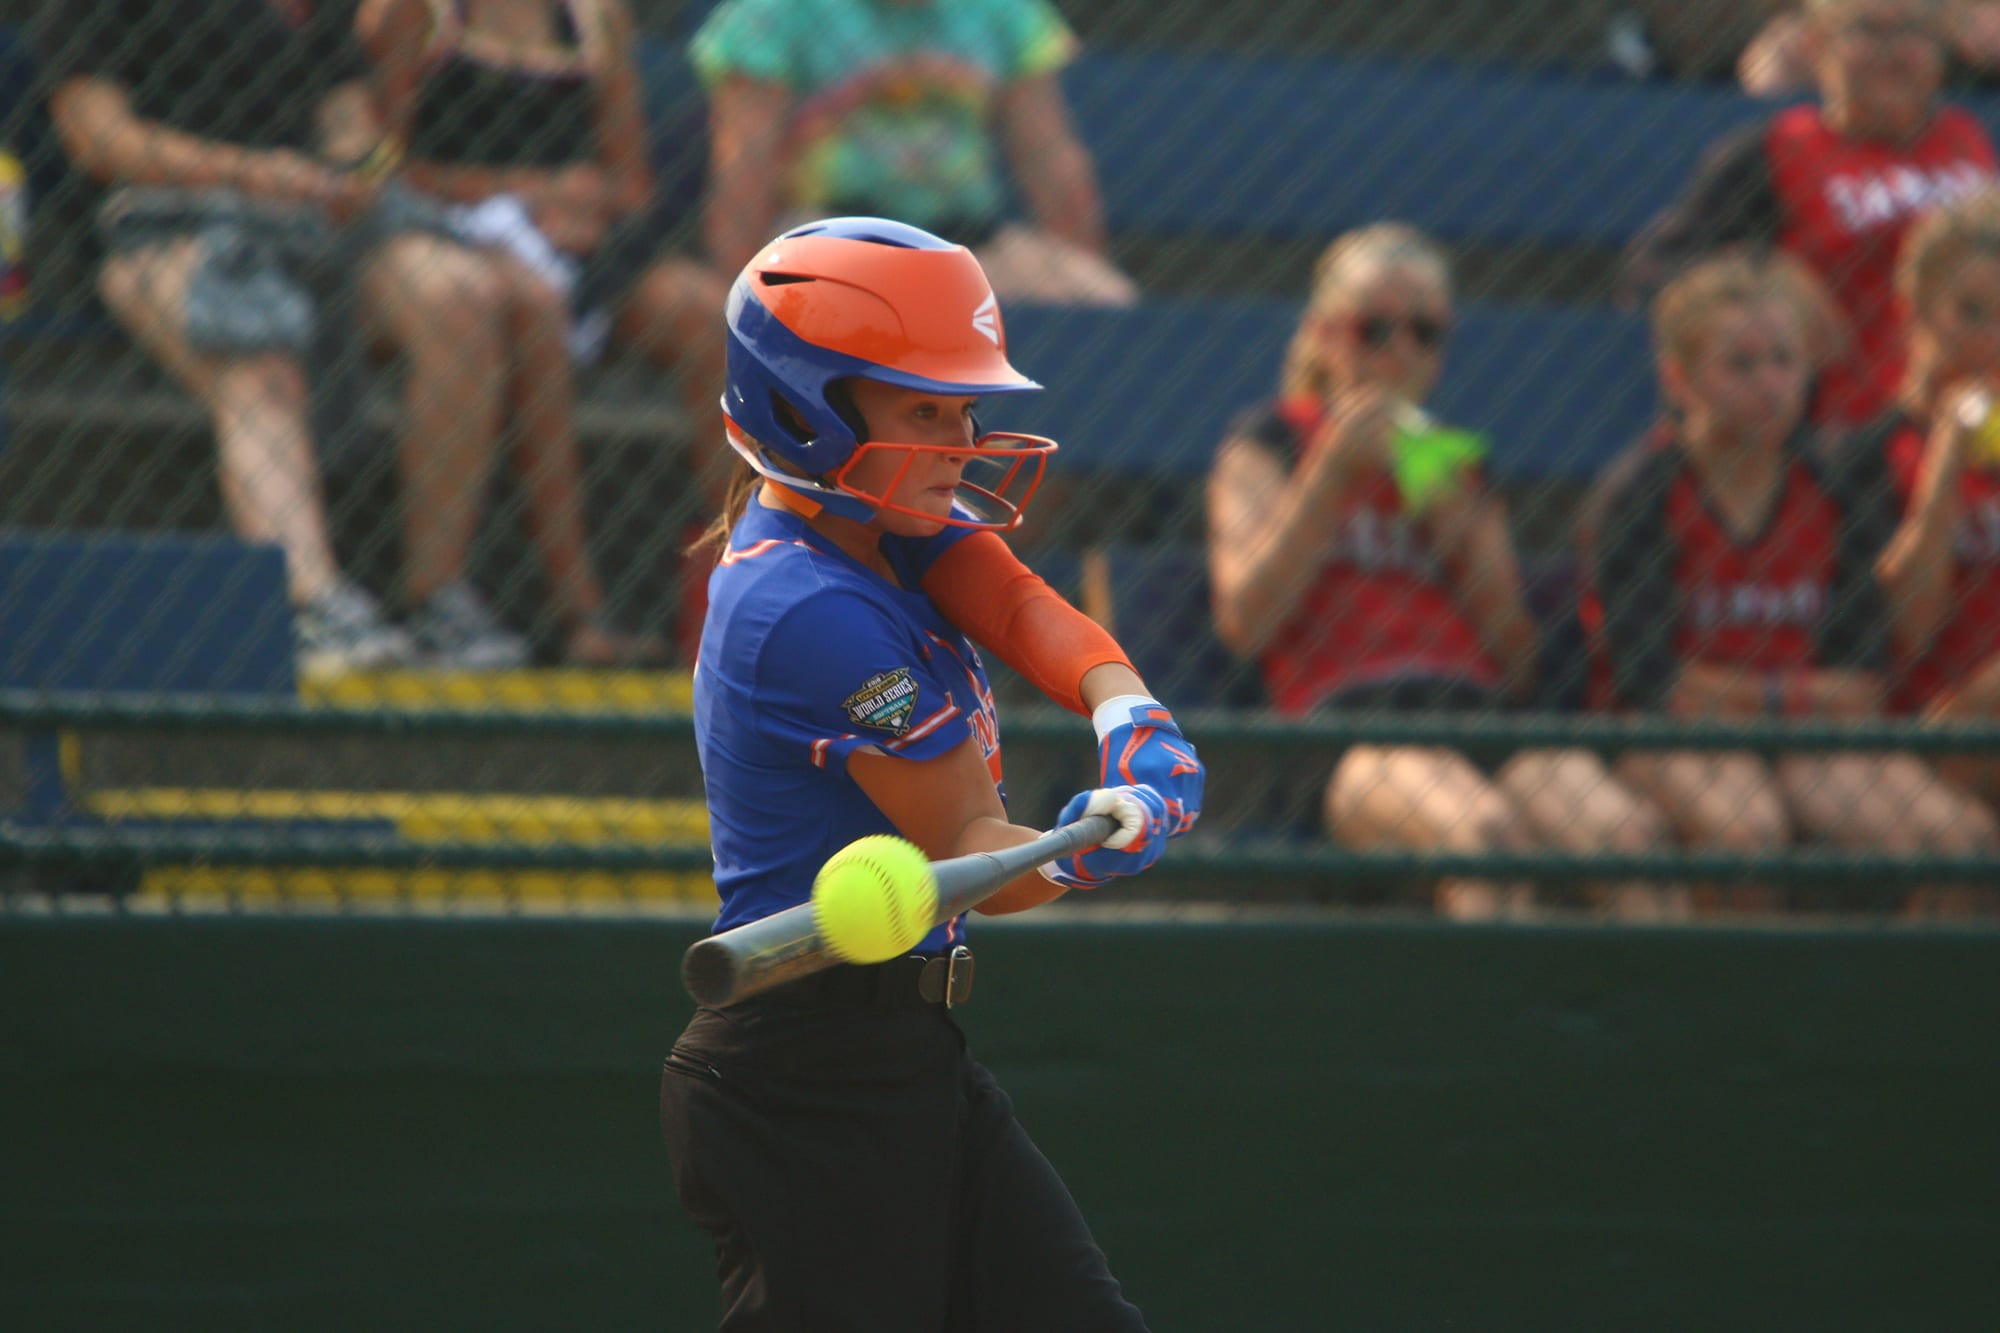 softball batter hitting ball